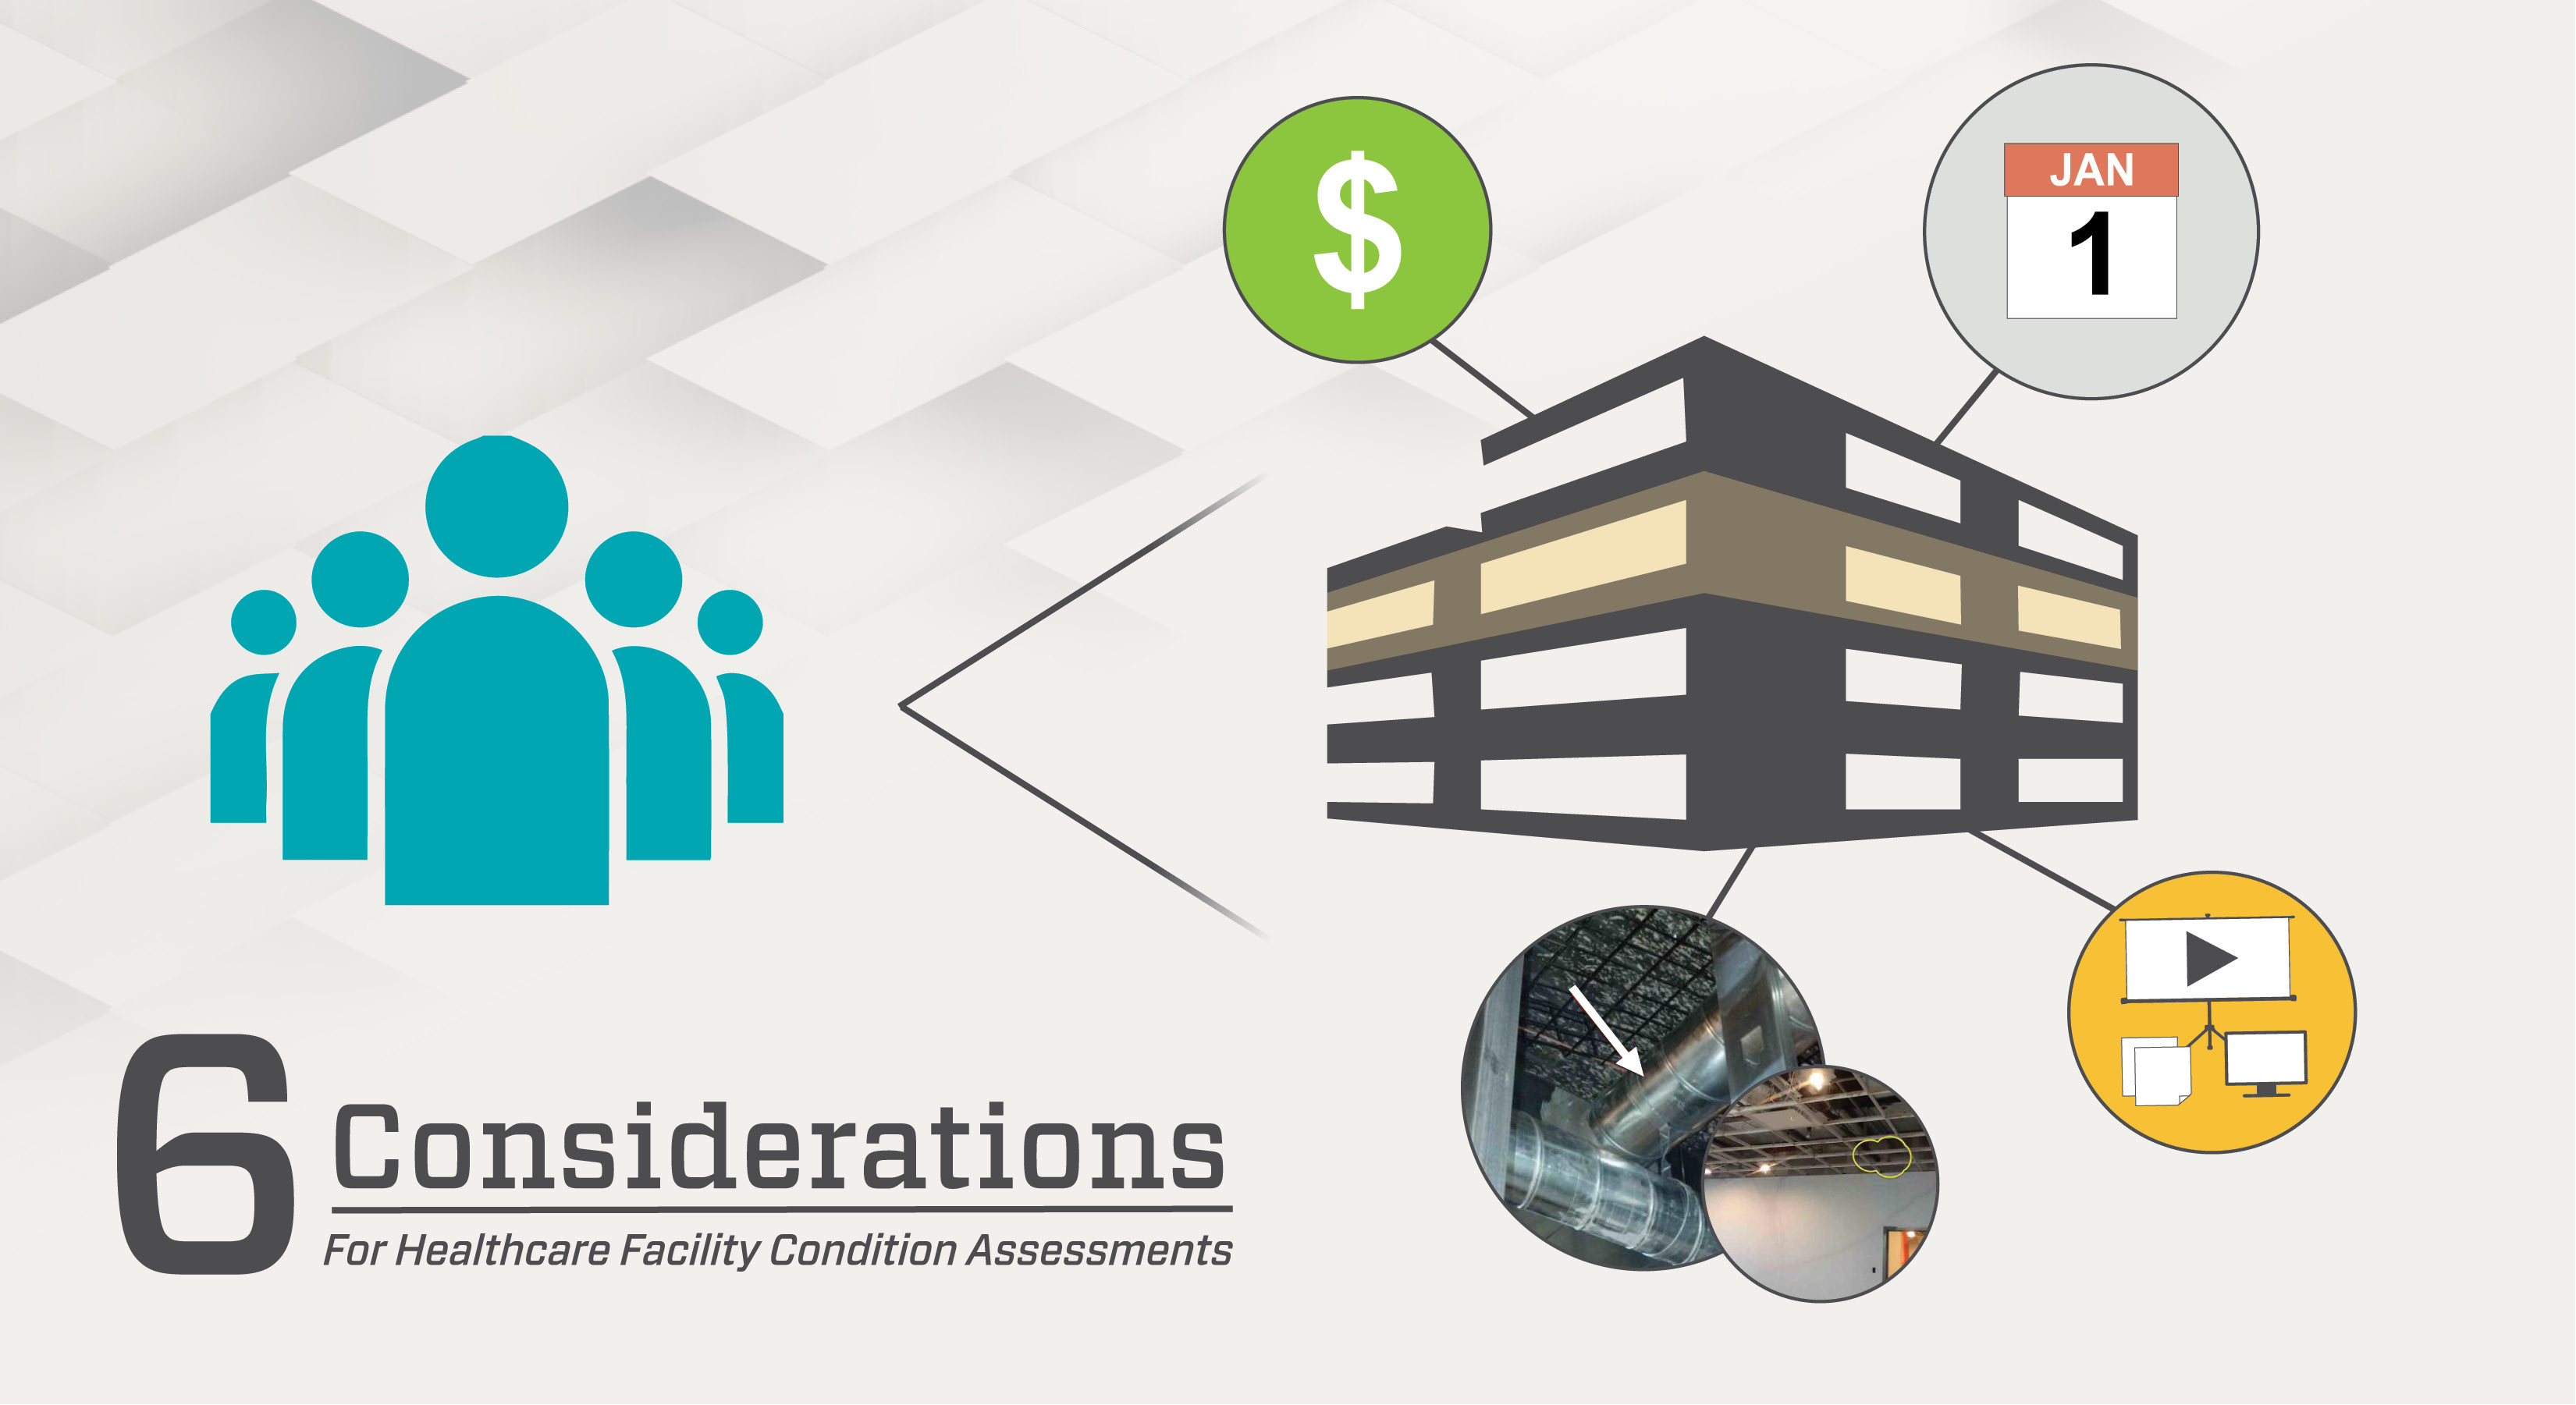 facility planning considerations Planning, construction and maintenance of physical facilities constitute a  significant component of  be factored into facility development considerations  11.